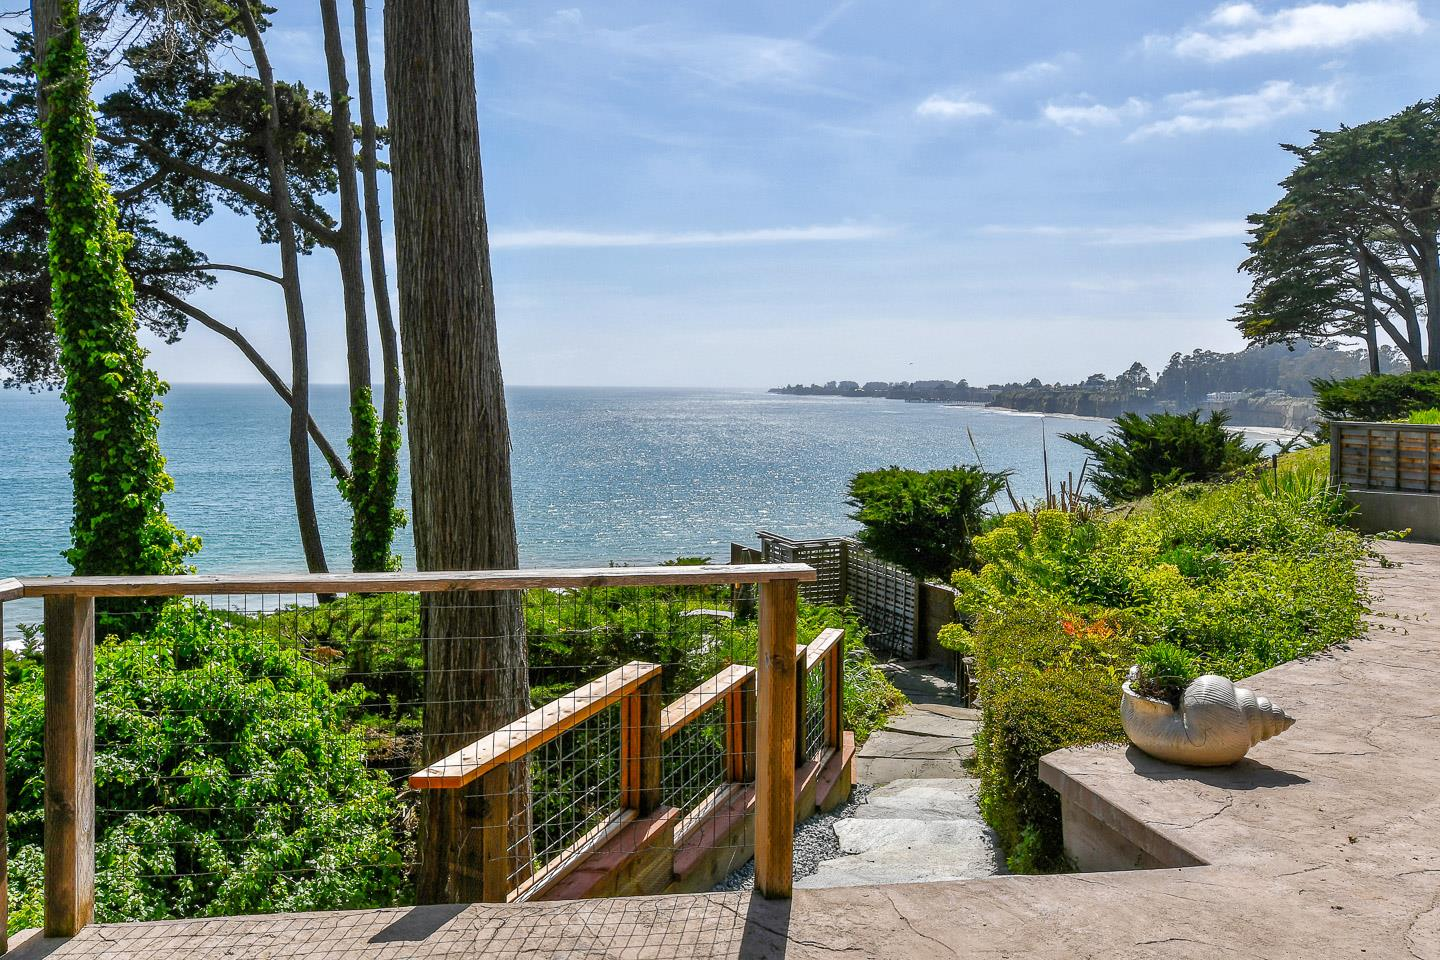 Hear the waves, breathe the salt air and watch the sun set over the Monterey Bay from this 3 bedroom, 3.5 bath gem on the hill overlooking Pot Belly Beach. Spectacular panoramic view of the Bay from floor to ceiling windows and French doors in living room, dining room and master bedroom - and from the decks, fire pit and hot tub. Deeded access to Pot Belly Beach. Slate floors, luxurious master bath with stone shower and huge tub. Kitchen with quartz countertop, Viking range and wine cooler. Spiral stairs to loft with private bedroom and half bath. Private road with gated entry. Perfect location in mid-County Santa Cruz - easy freeway access, adjacent to New Brighton State Beach, around the corner from Capitola. It's an easy drive to Santa Cruz, Monterey or Carmel. And if flying is your preference, it's only 20 minutes to Watsonville Airport. Sellers' home for many years that is now a short term vacation rental. Buyers must be willing to participate in 1031 exchange.